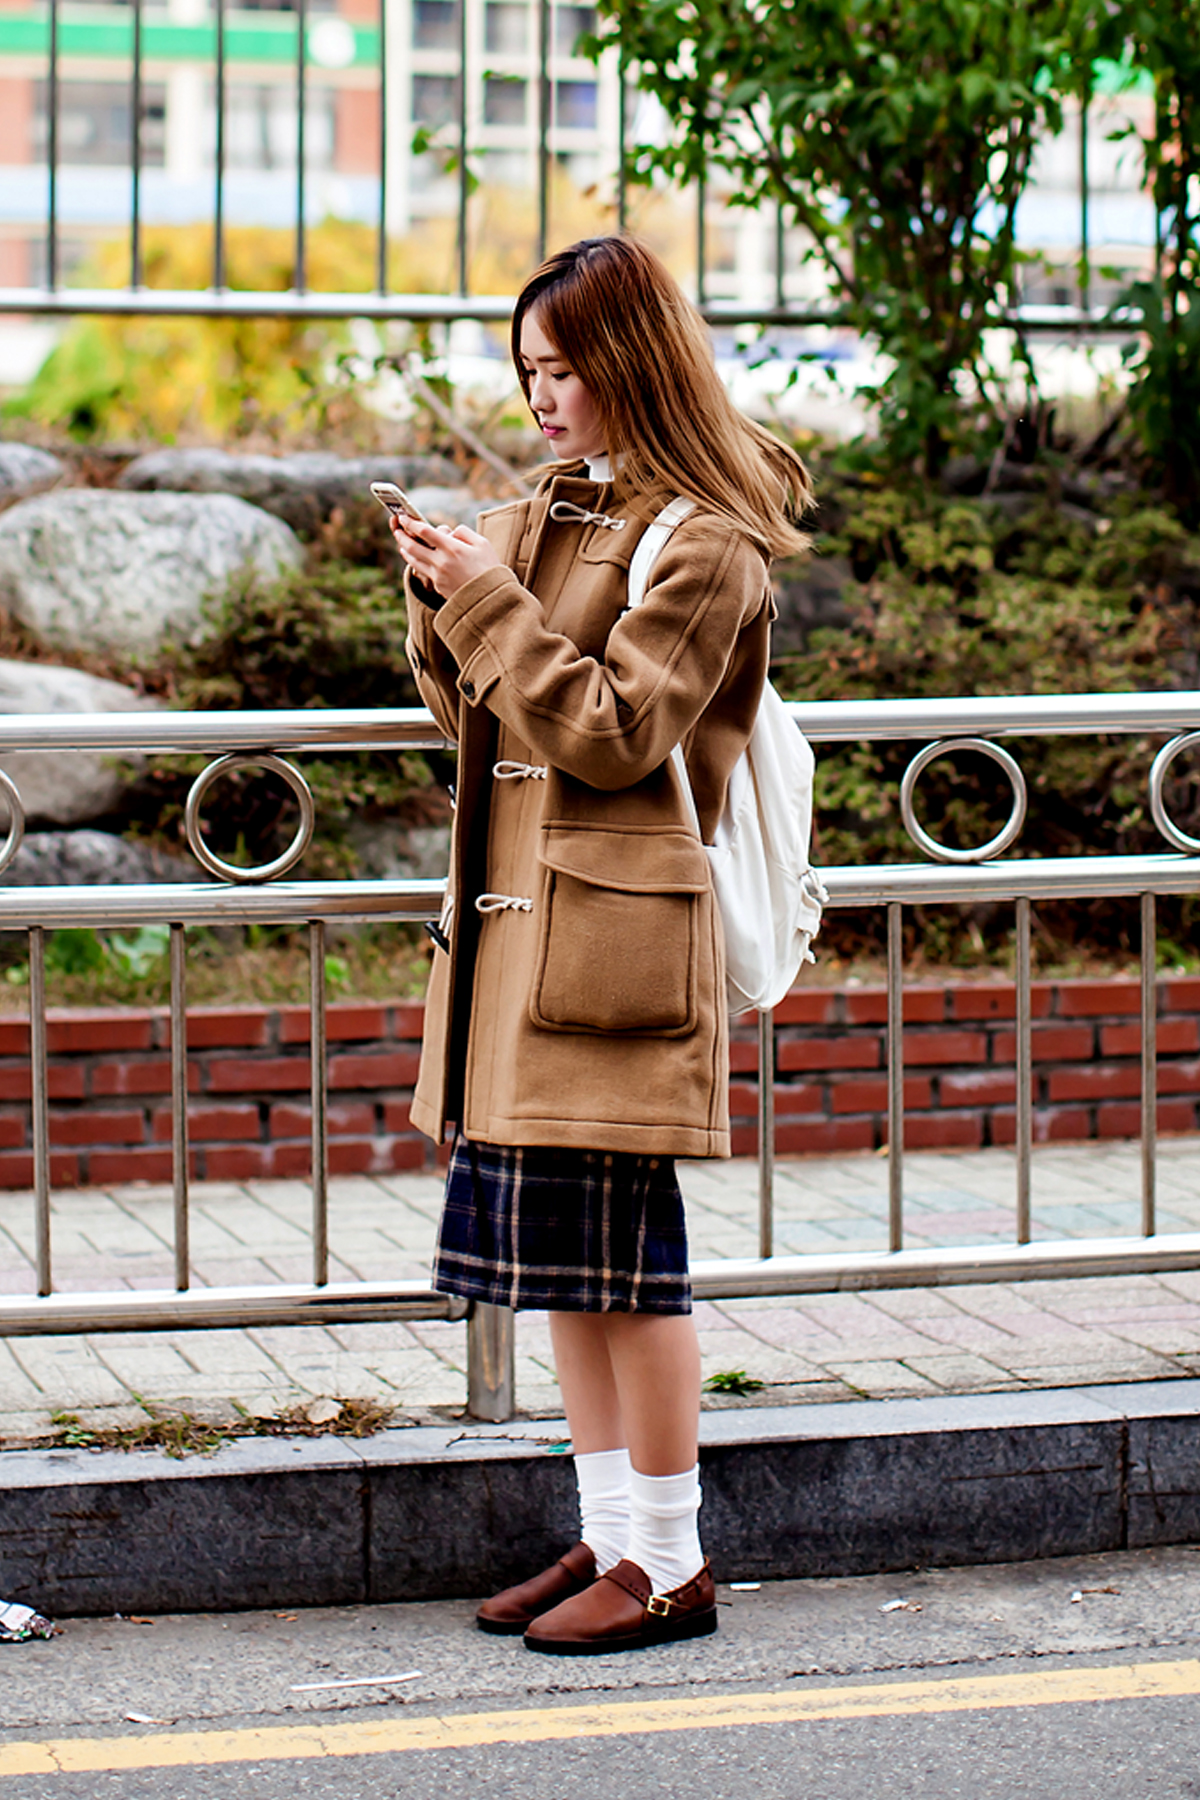 On the street… Shin Jihye Busan.jpg